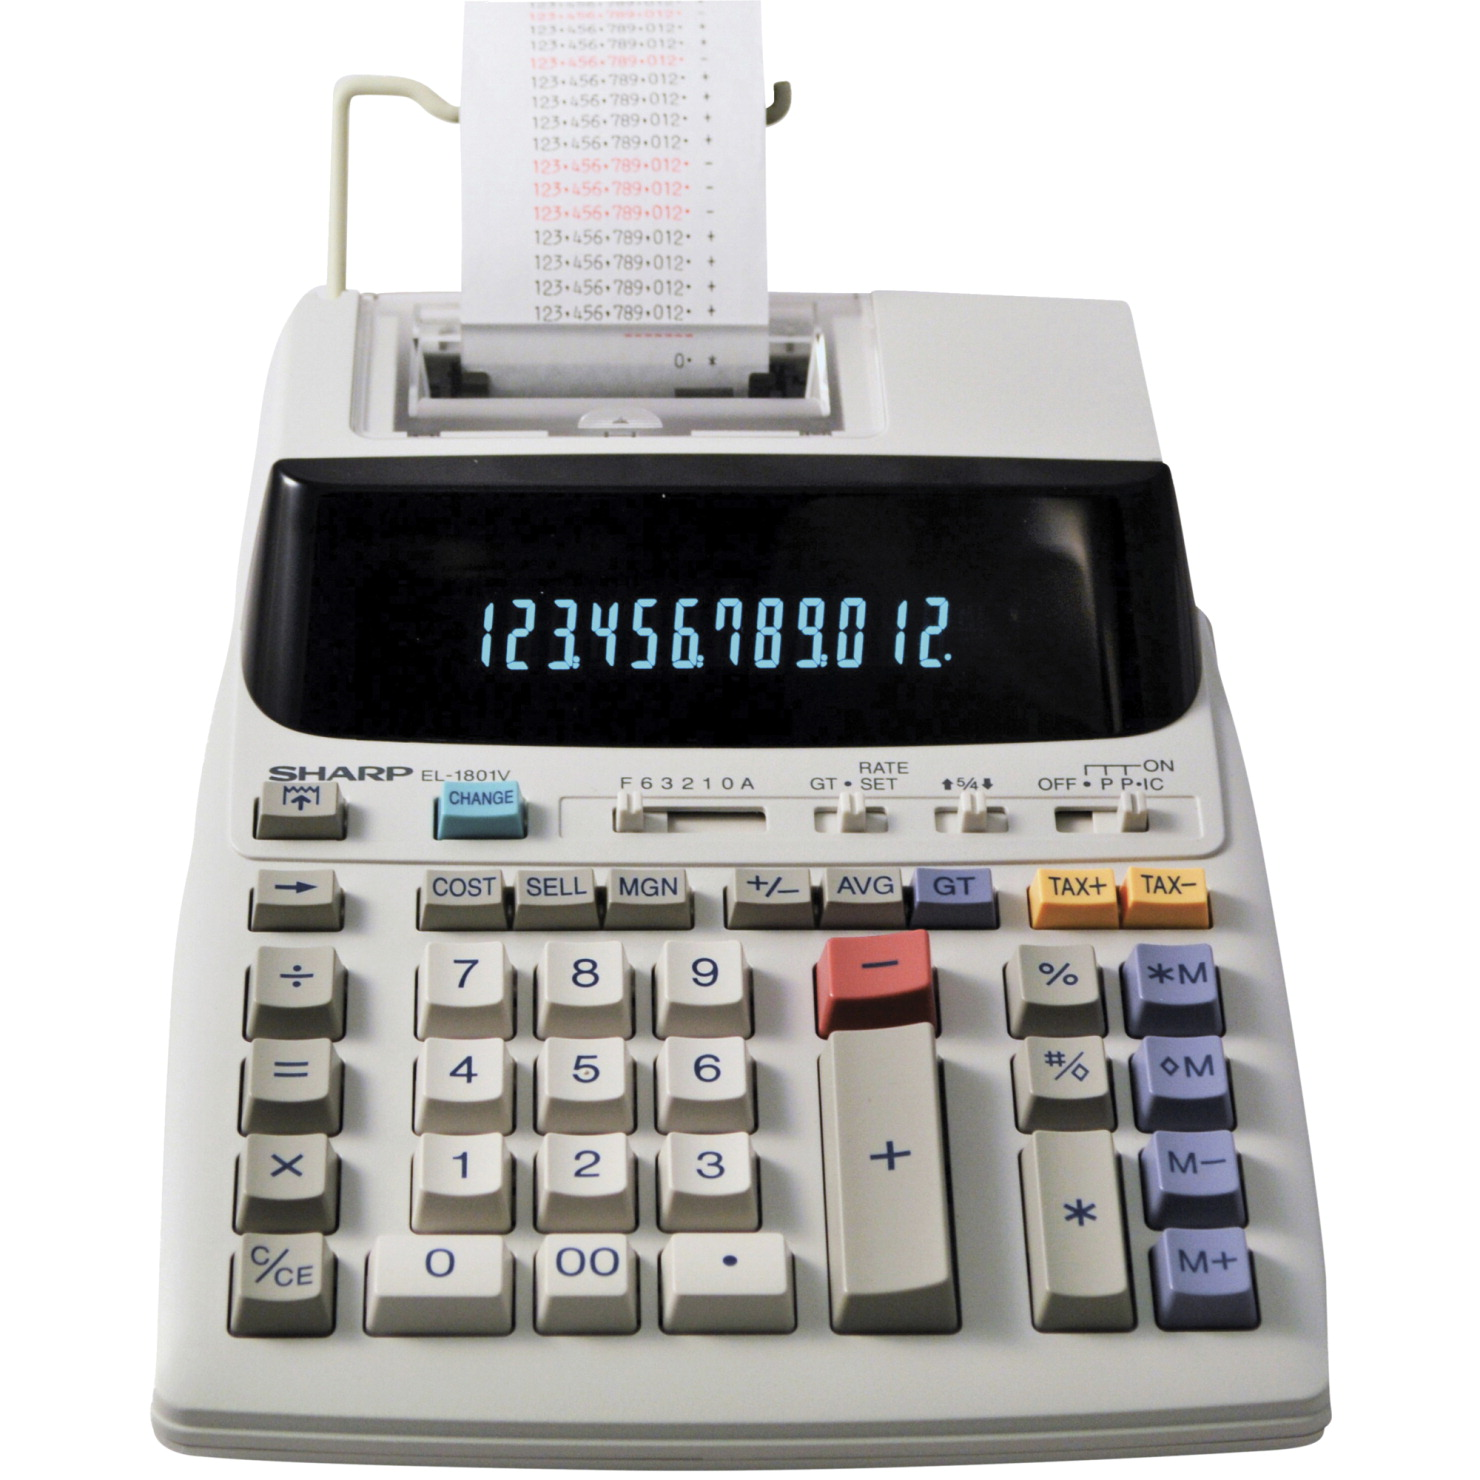 Sharp El 1801v 12 Digit 2 Color Printing Calculator With Cash Register Mode